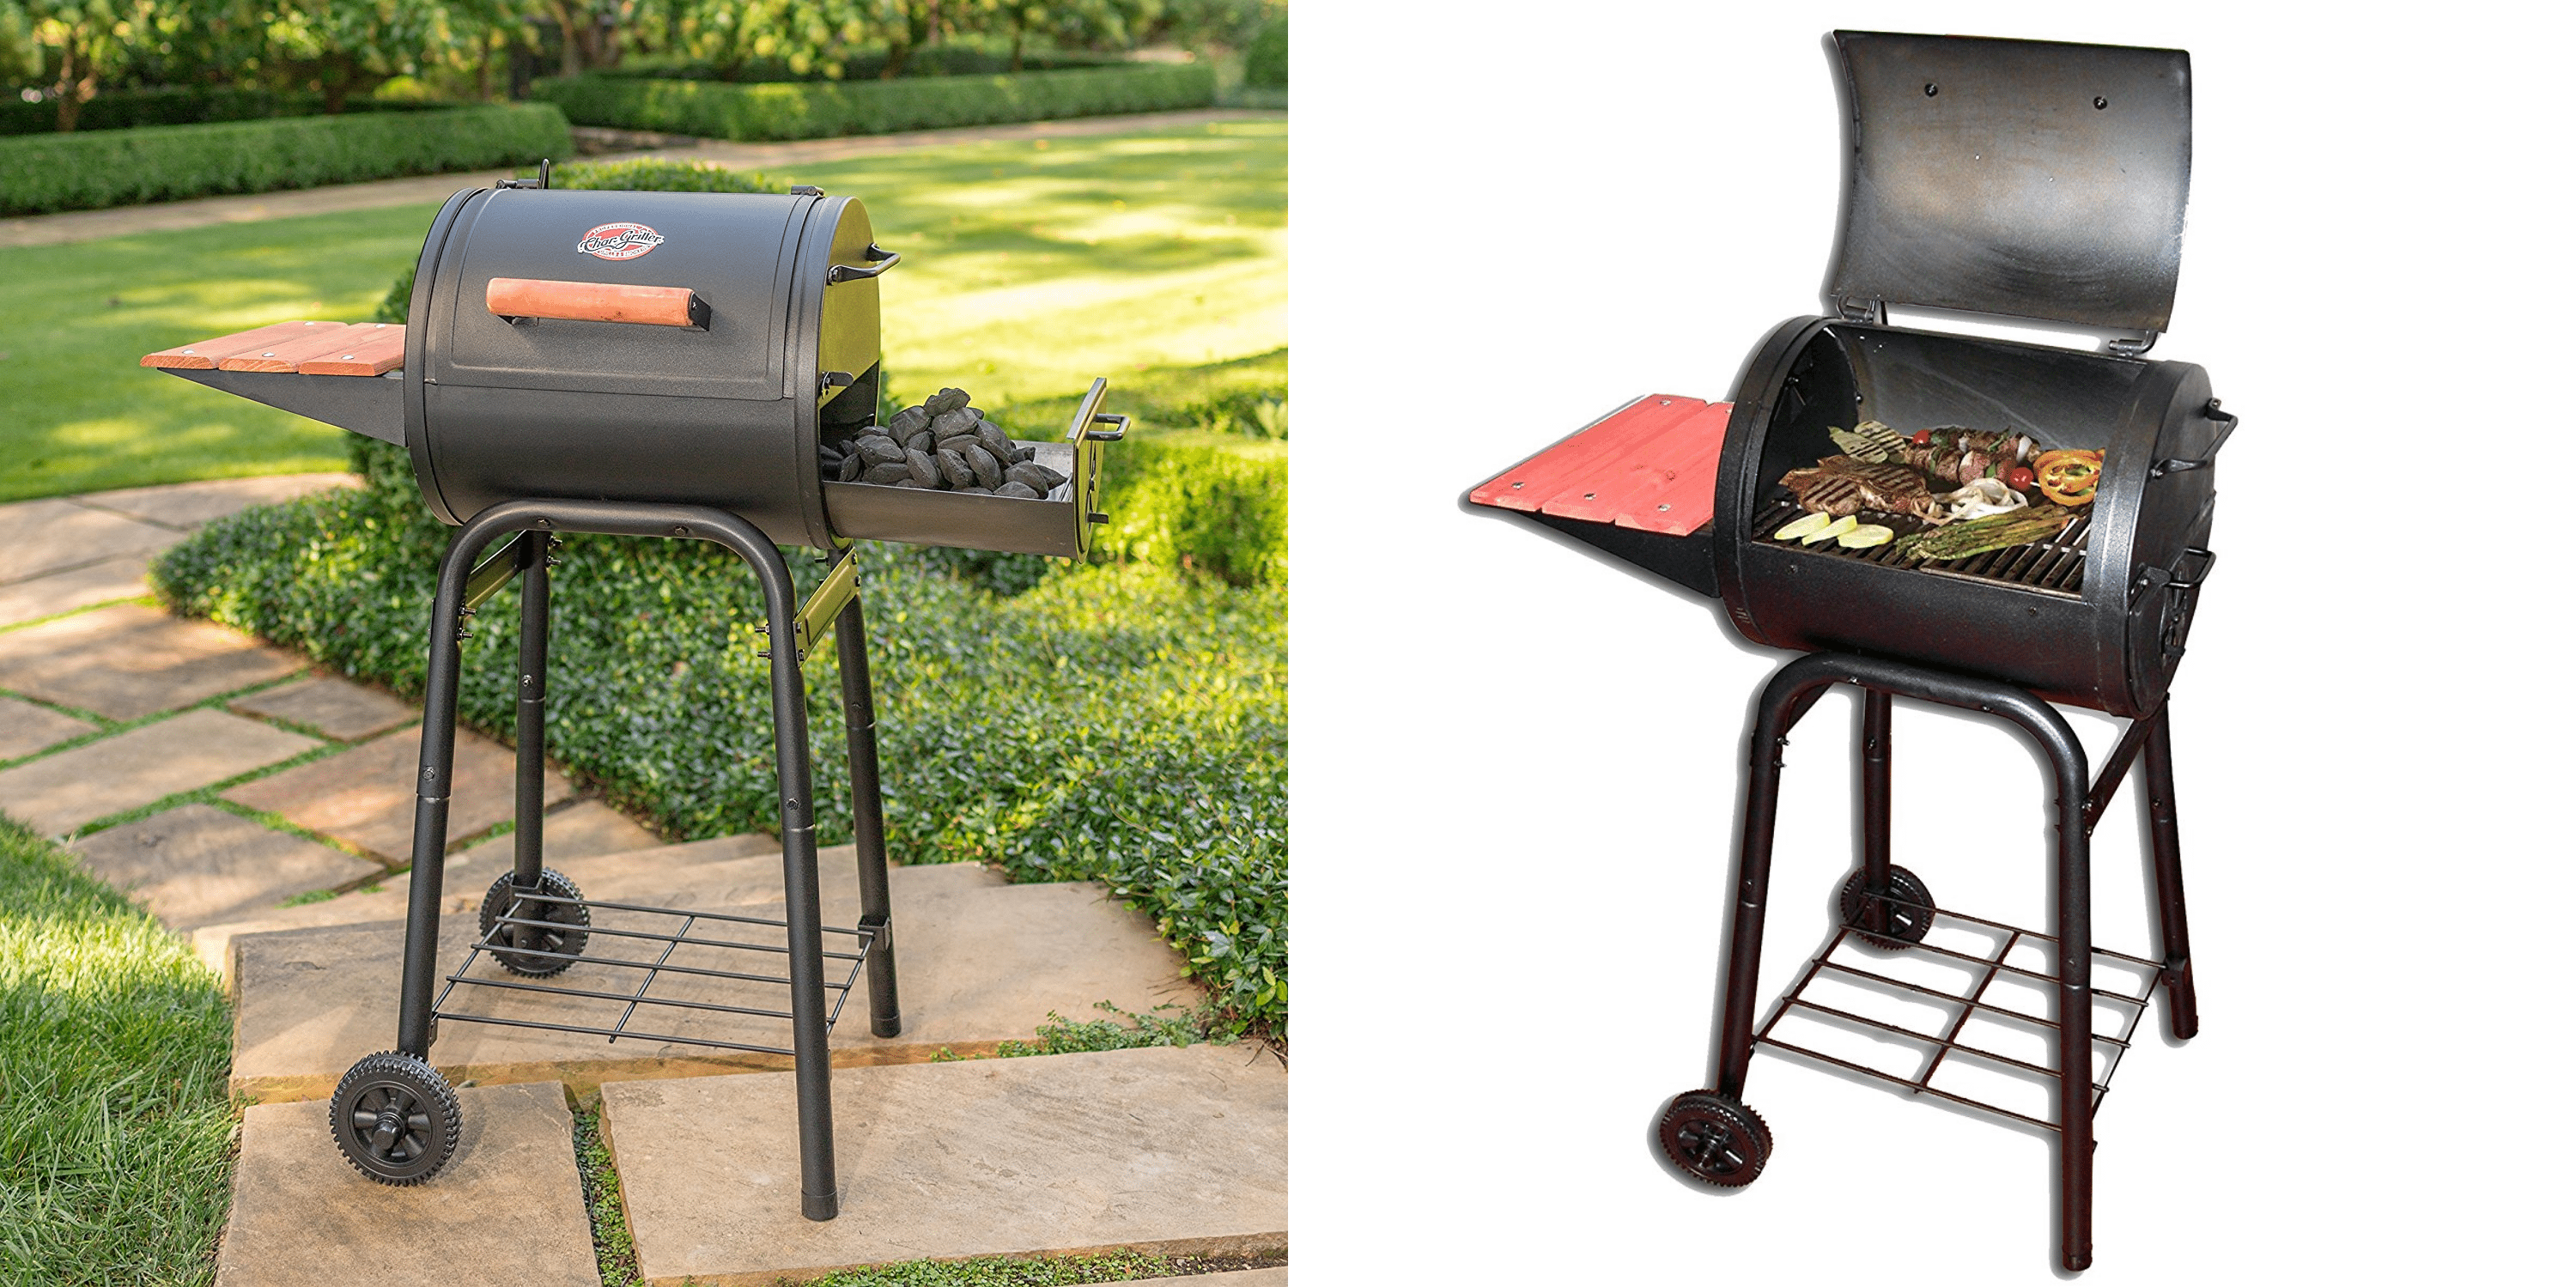 Wonderful Looking For A Grill This Fall? Amazon Prime Members Can Get This Char Griller  Patio Pro Charcoal Grill For $44.48 When You Choose Free No Rush Shipping  At ...